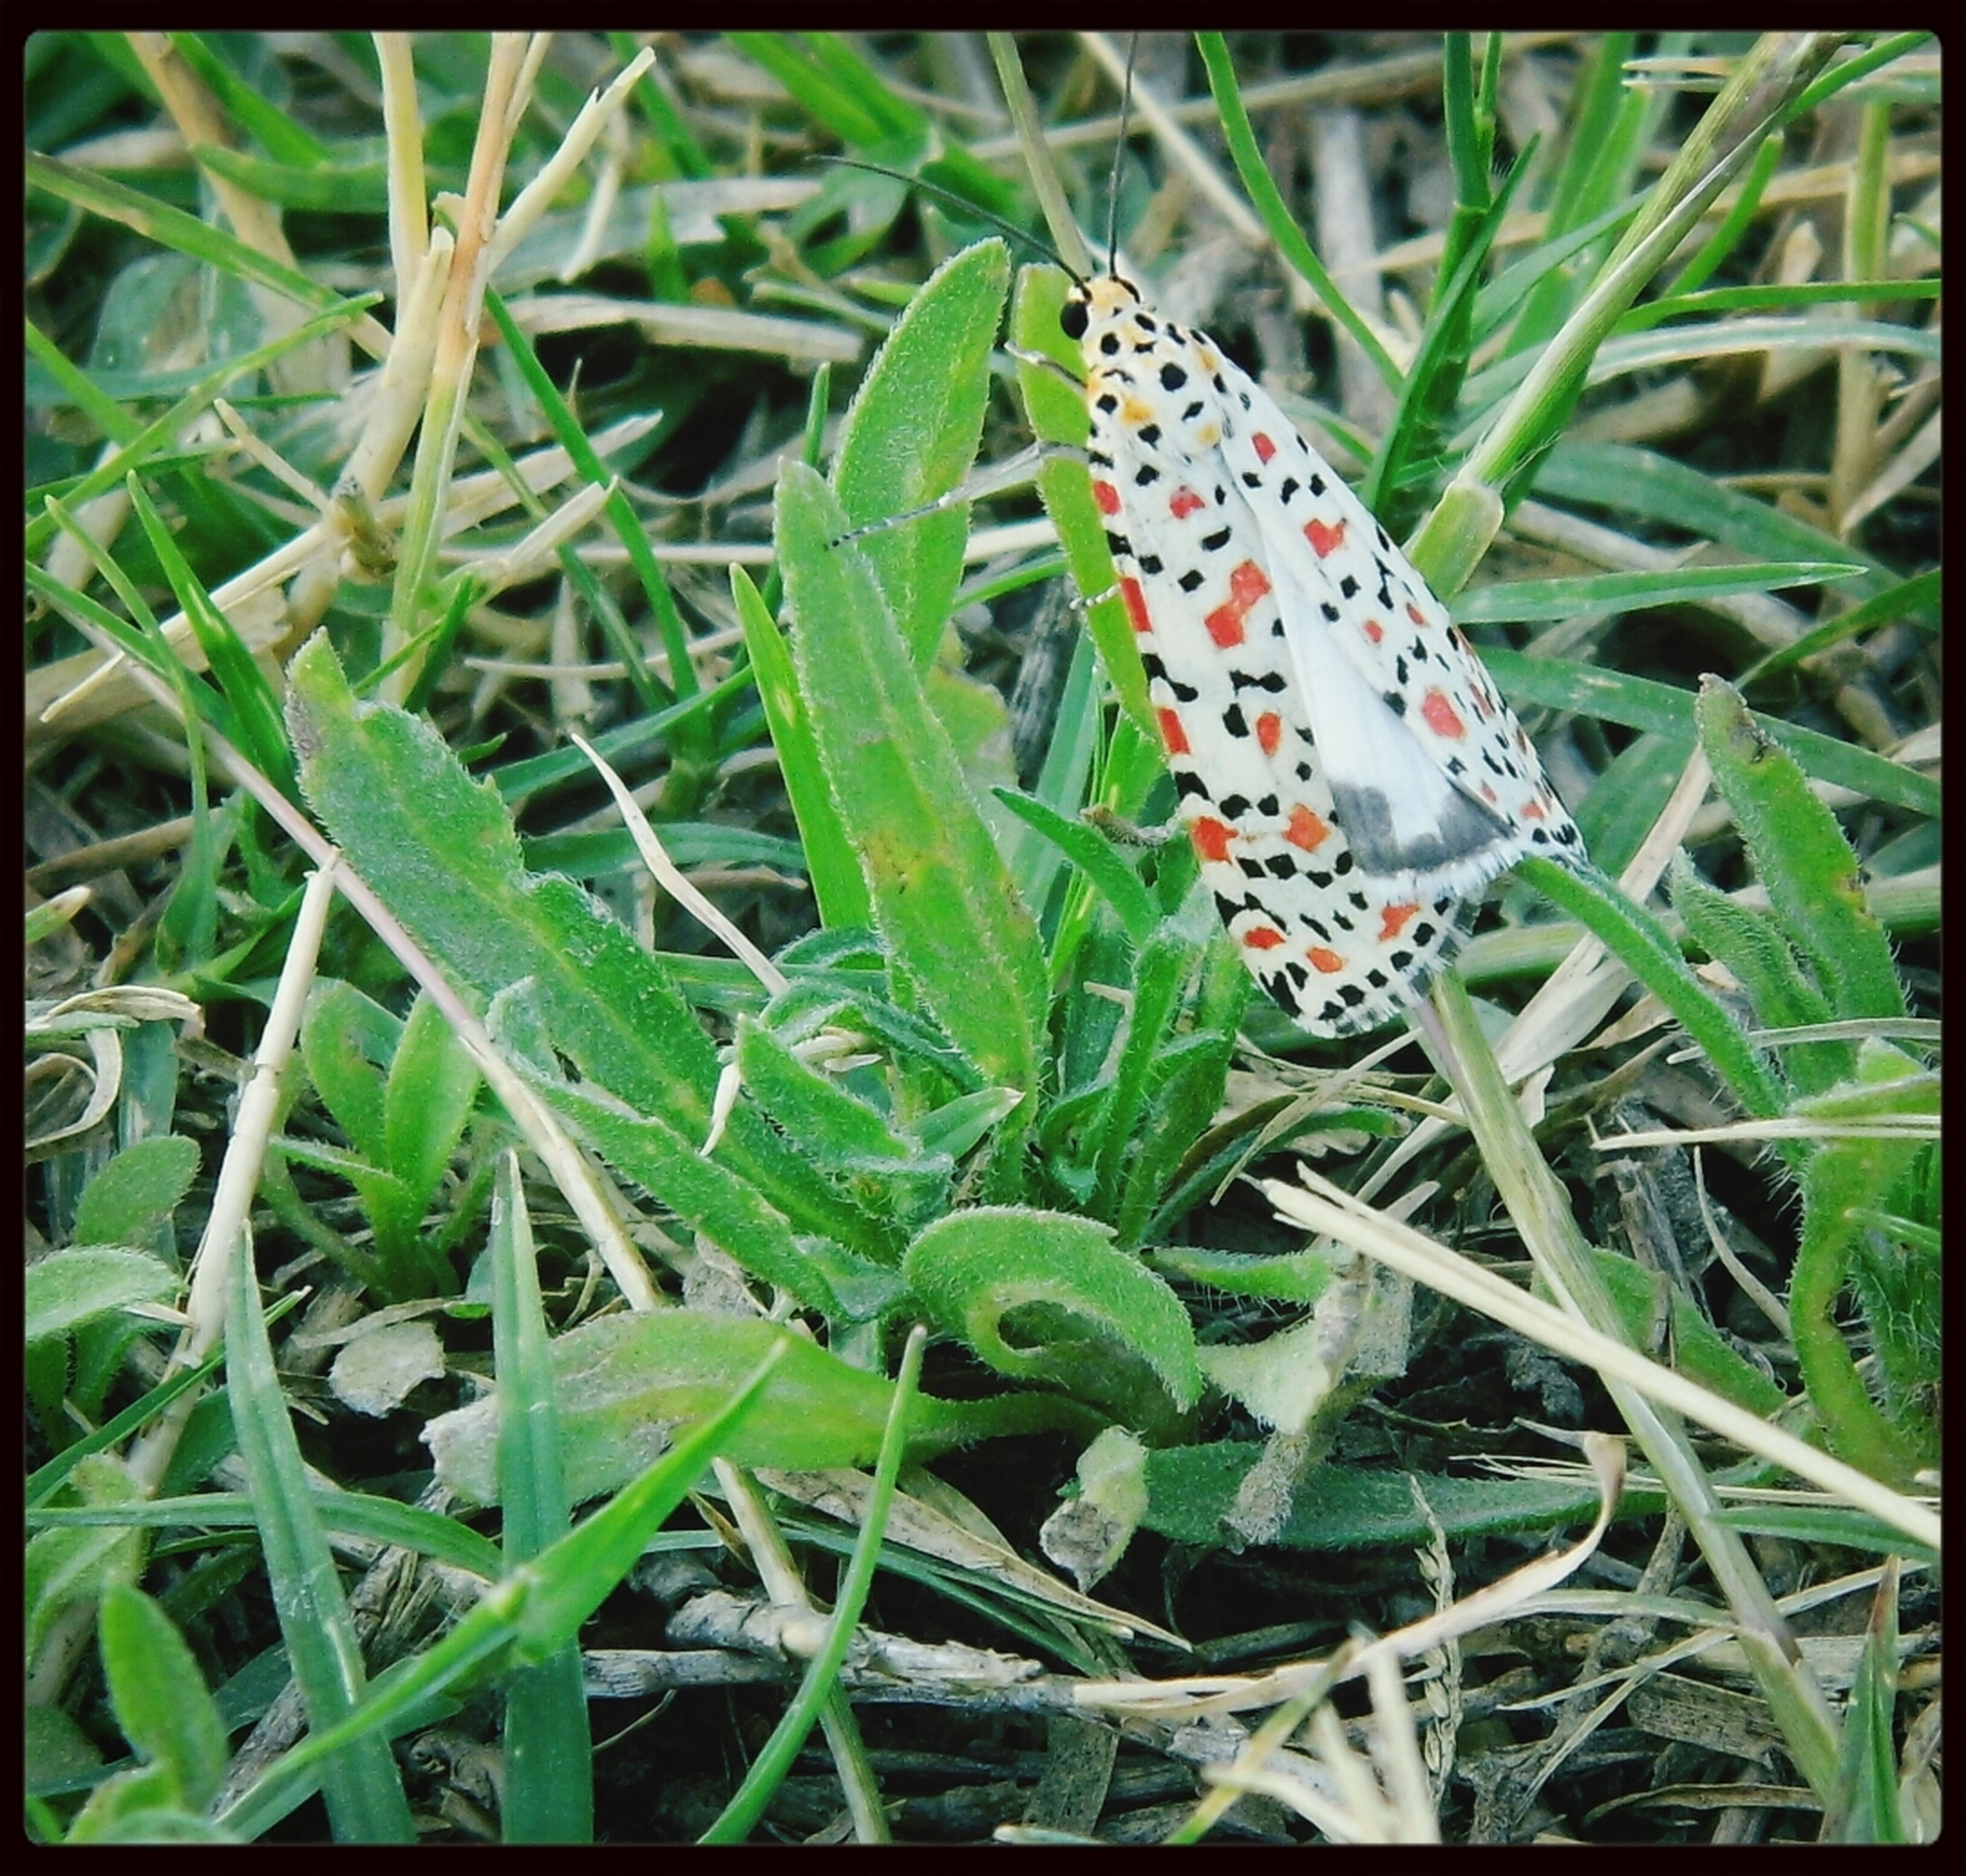 insect, animals in the wild, animal themes, wildlife, one animal, butterfly - insect, green color, close-up, plant, butterfly, growth, leaf, nature, animal markings, grass, beauty in nature, spotted, natural pattern, field, day